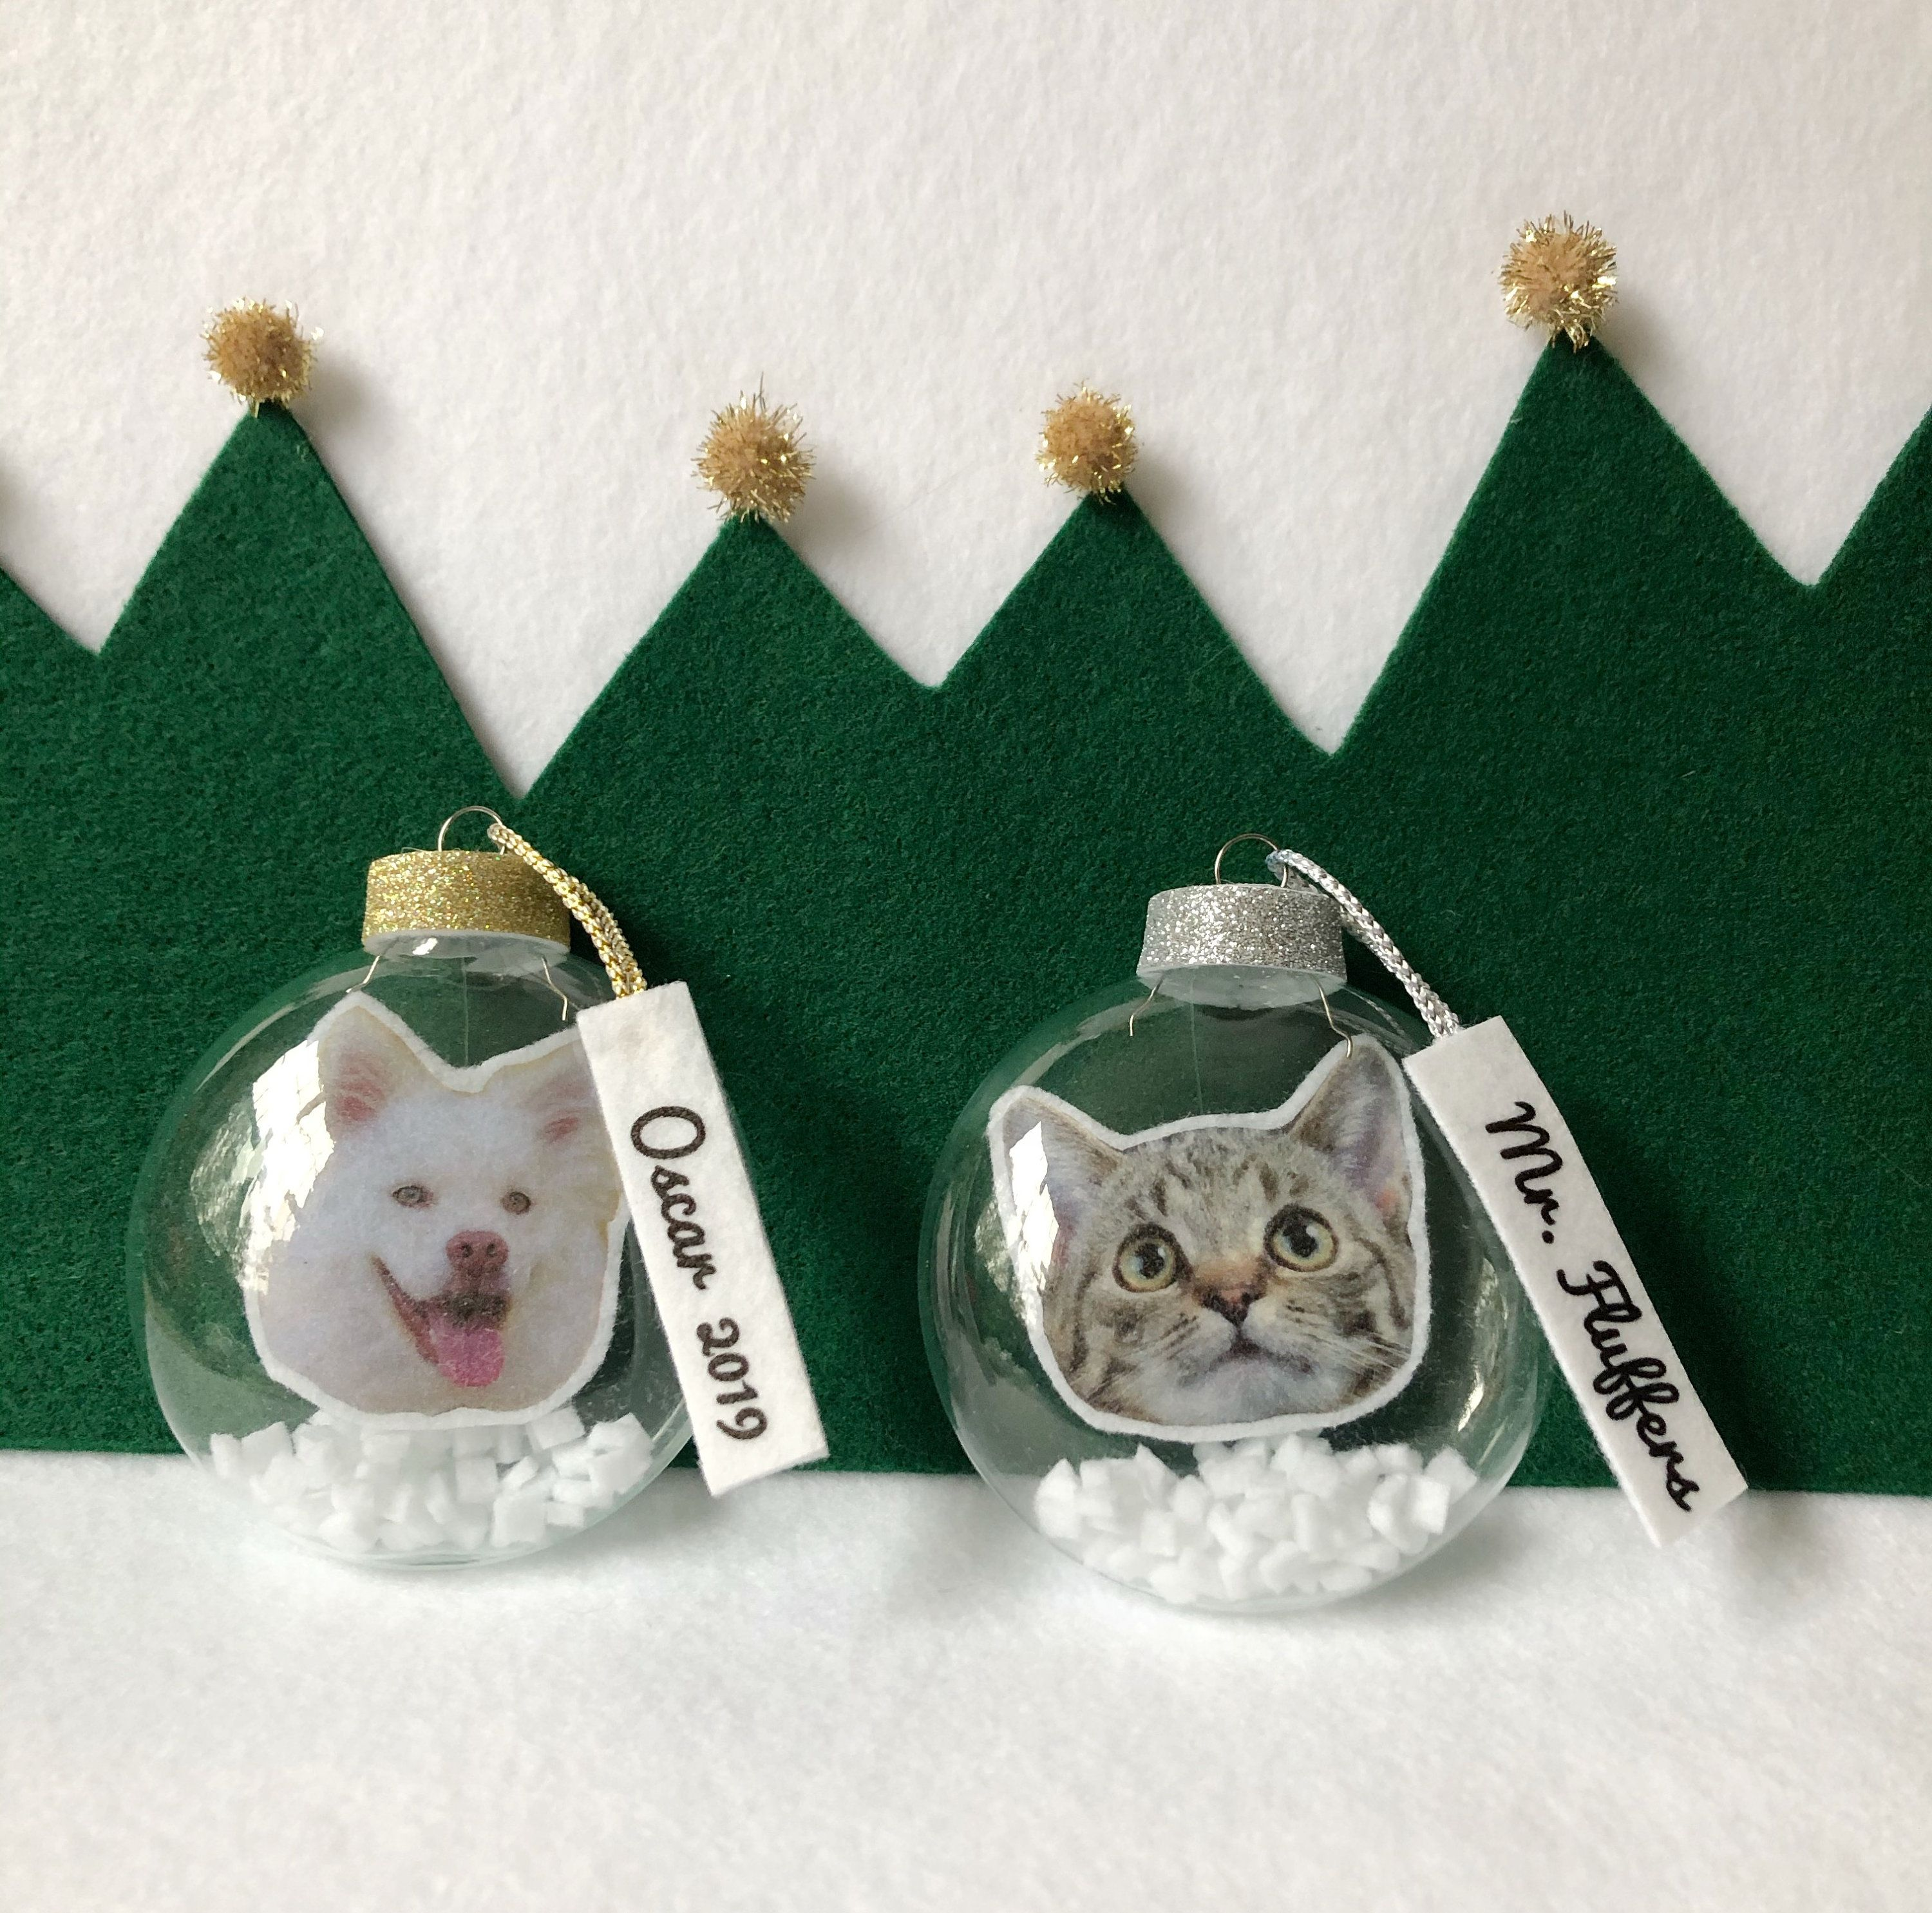 Photo And Name Personalized Pet Snow Globe Ornaments Christmas Ornaments Eco Friendly Recyc Cheap Christmas Gifts Diy Xmas Ornaments Christmas Ornaments